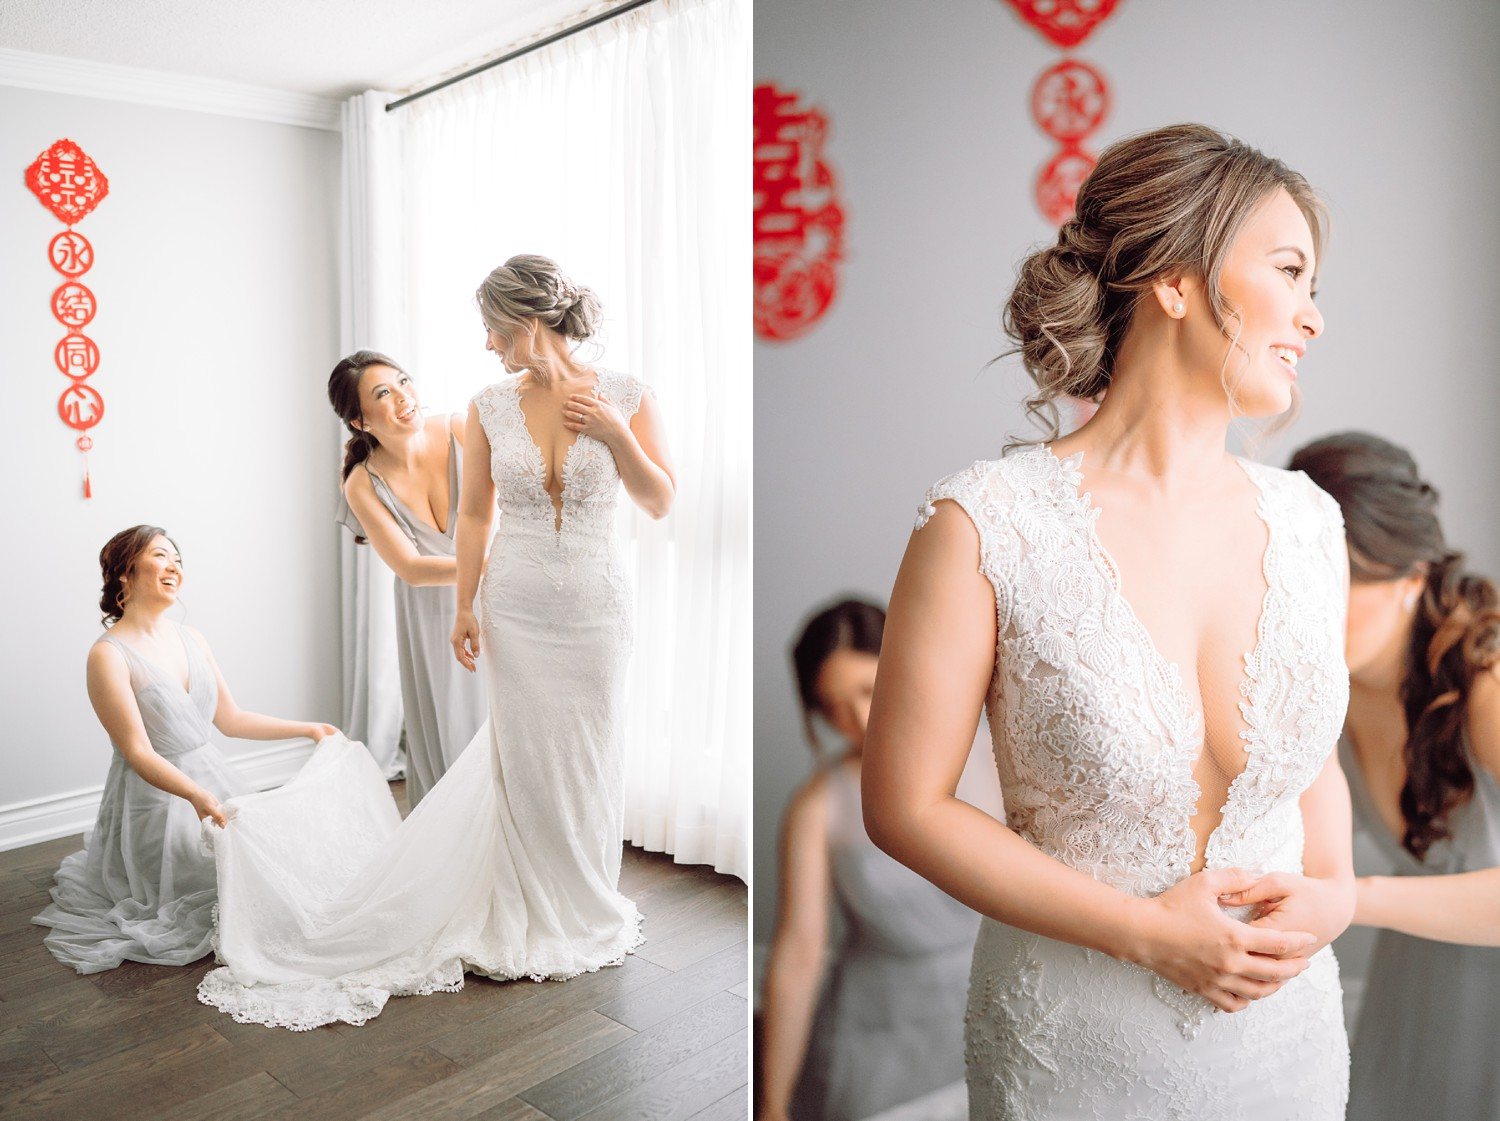 Bride_Prep_Archeo_Distillery_District_Wedding_Photos_Toronto_Destination_Wedding_Photographer-Rhythm_Photography